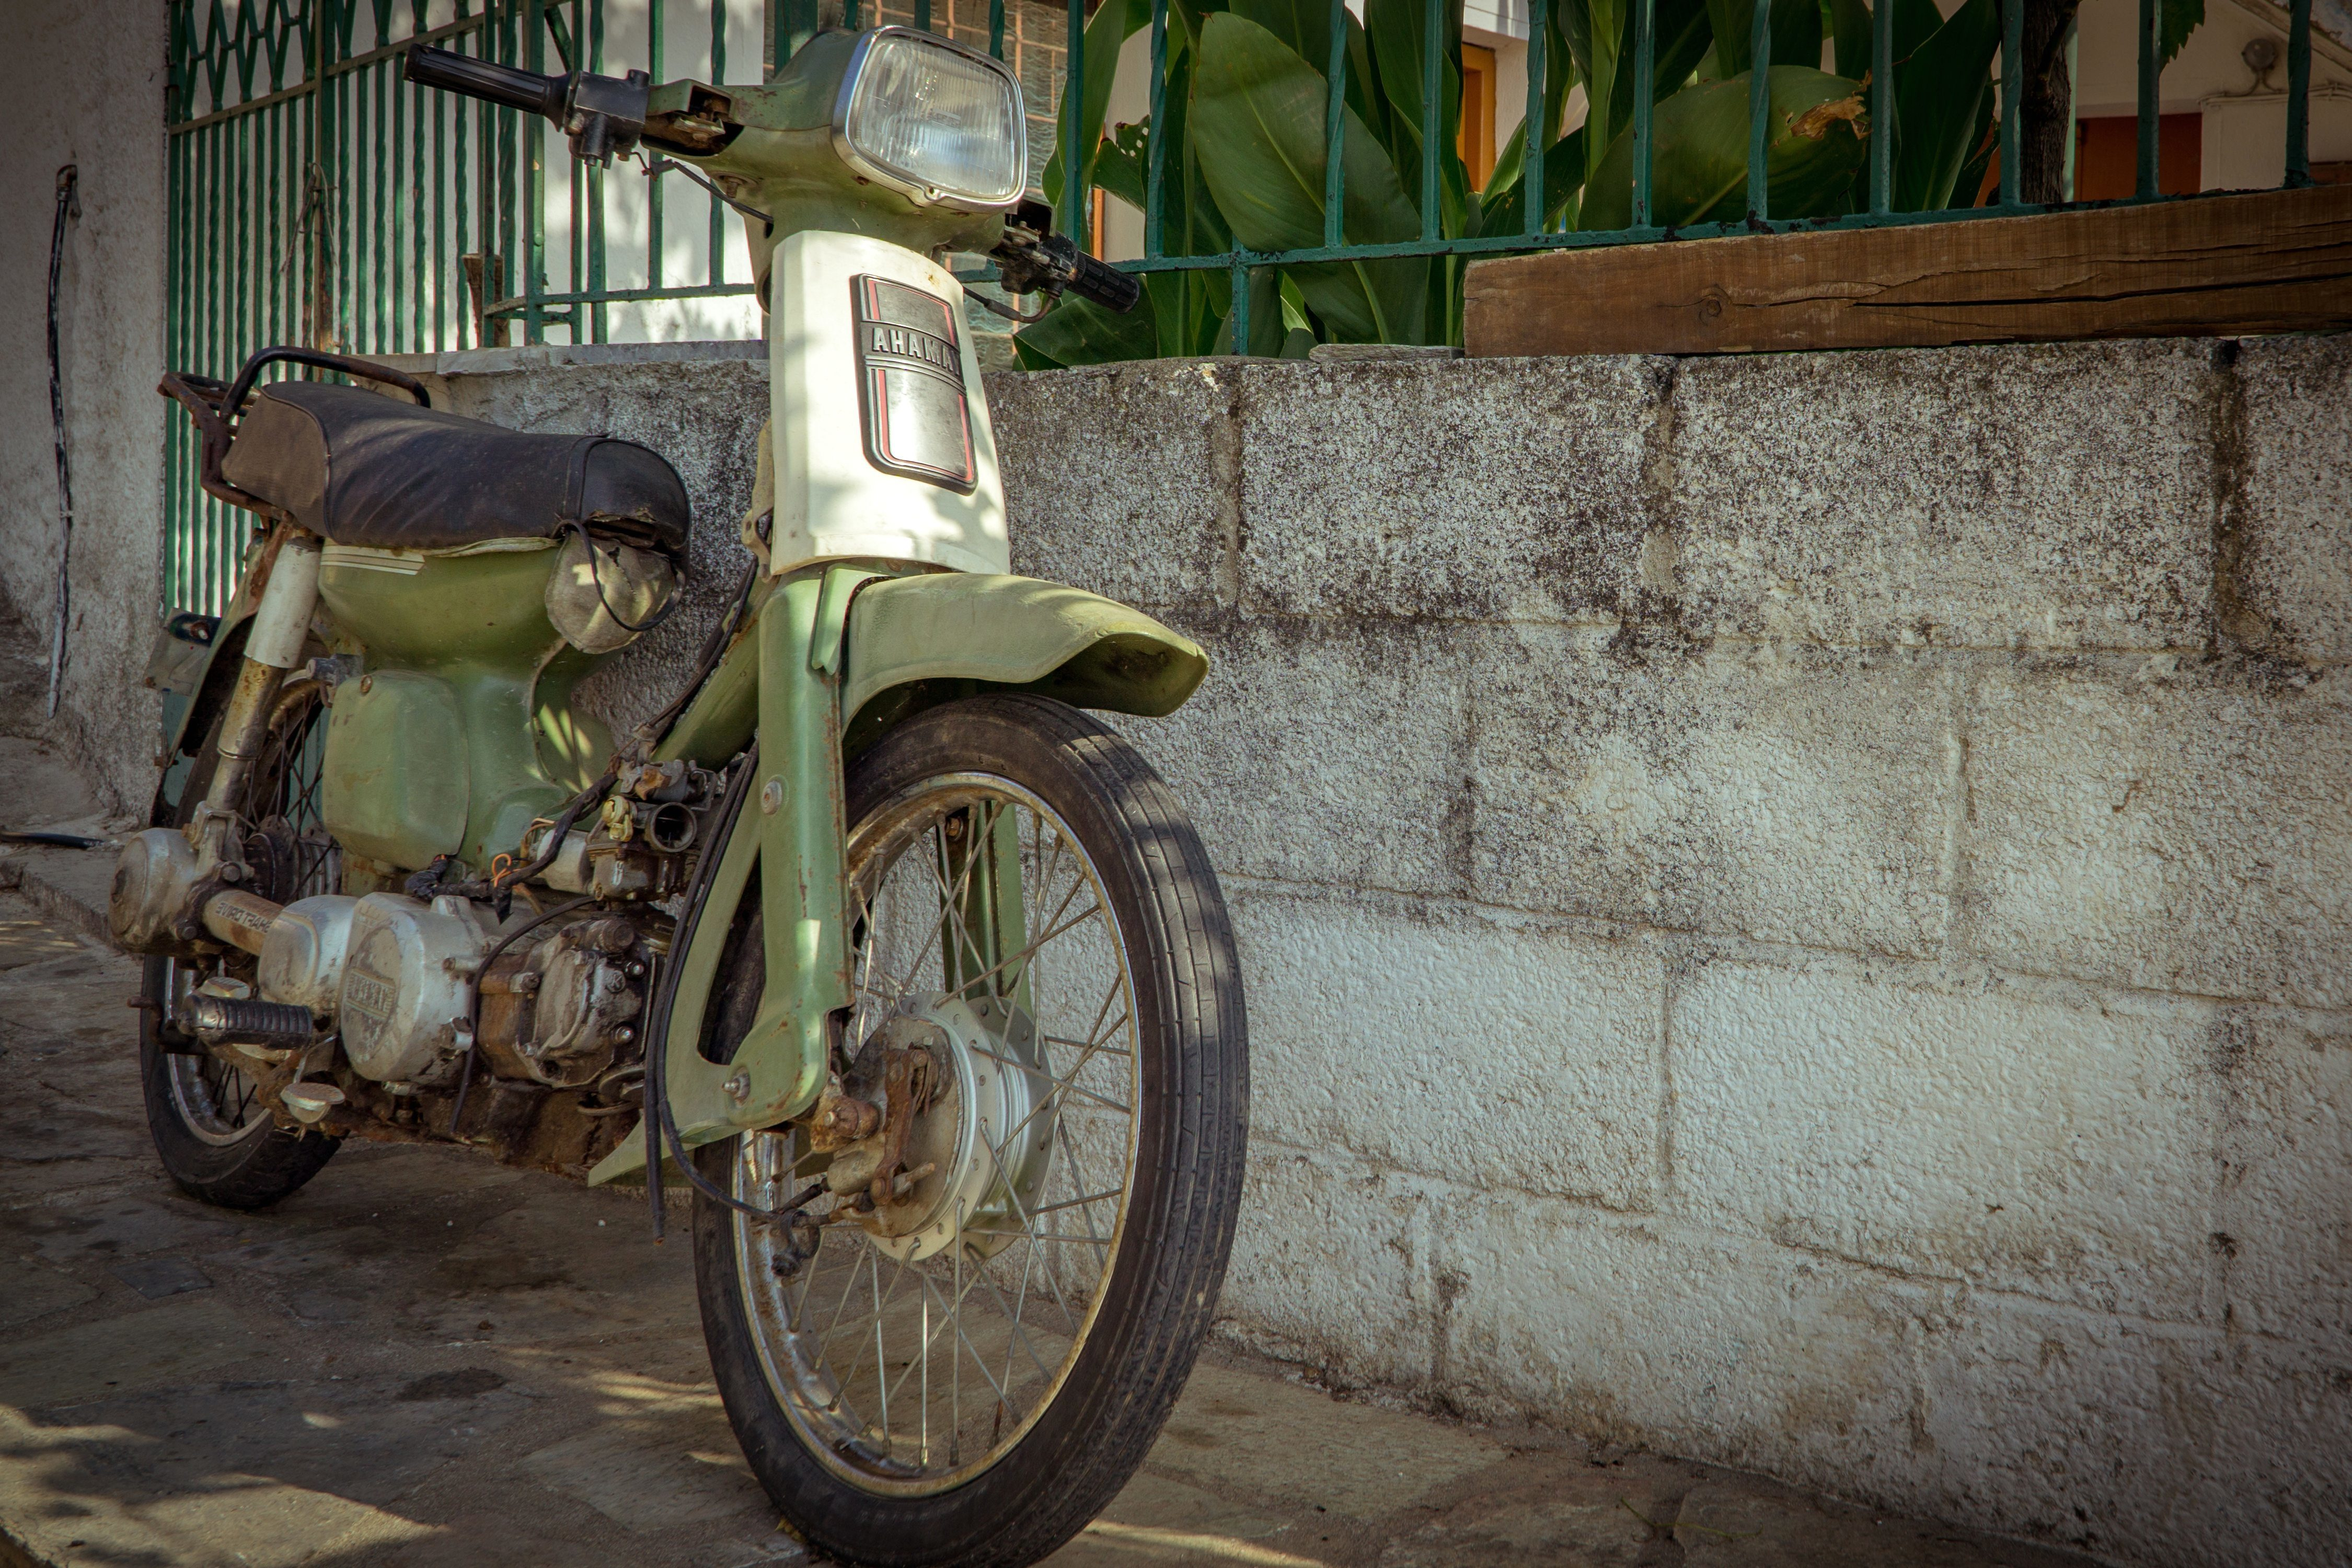 Goede Free picture: old, motor, scooter, vehicle, moped, motorcycle AB-57